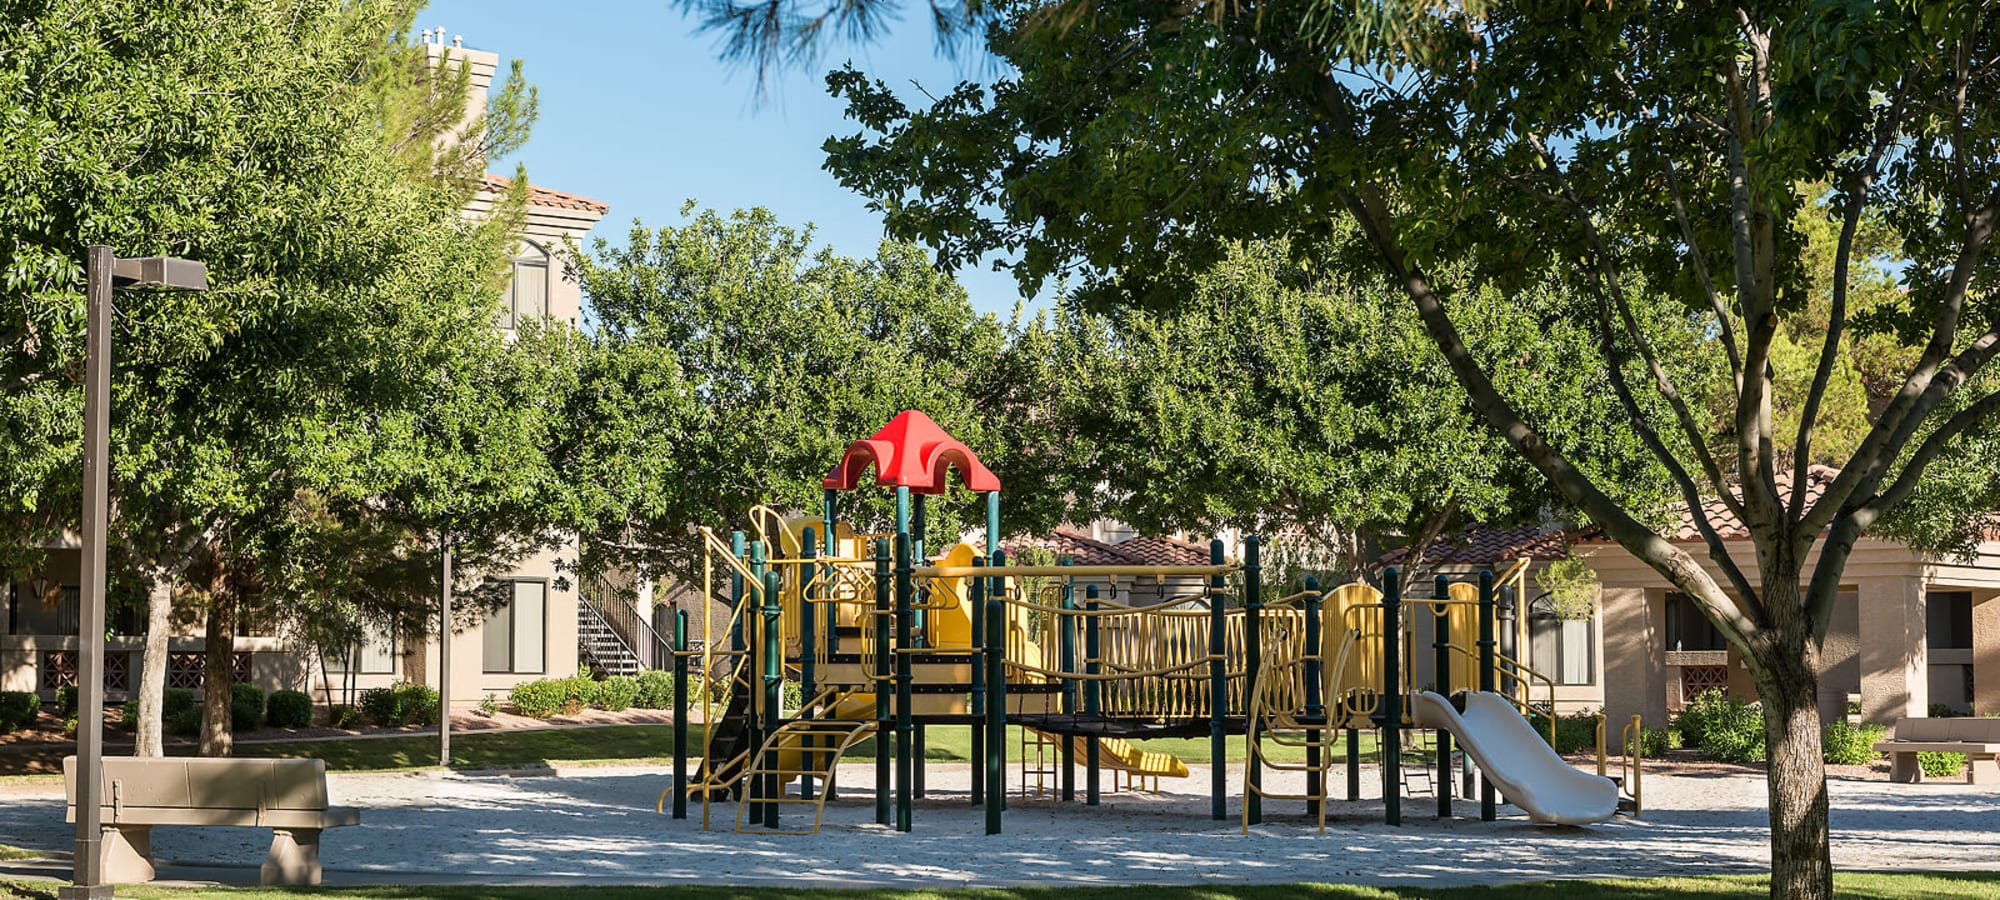 Onsite children's playground at San Pedregal in Phoenix, Arizona